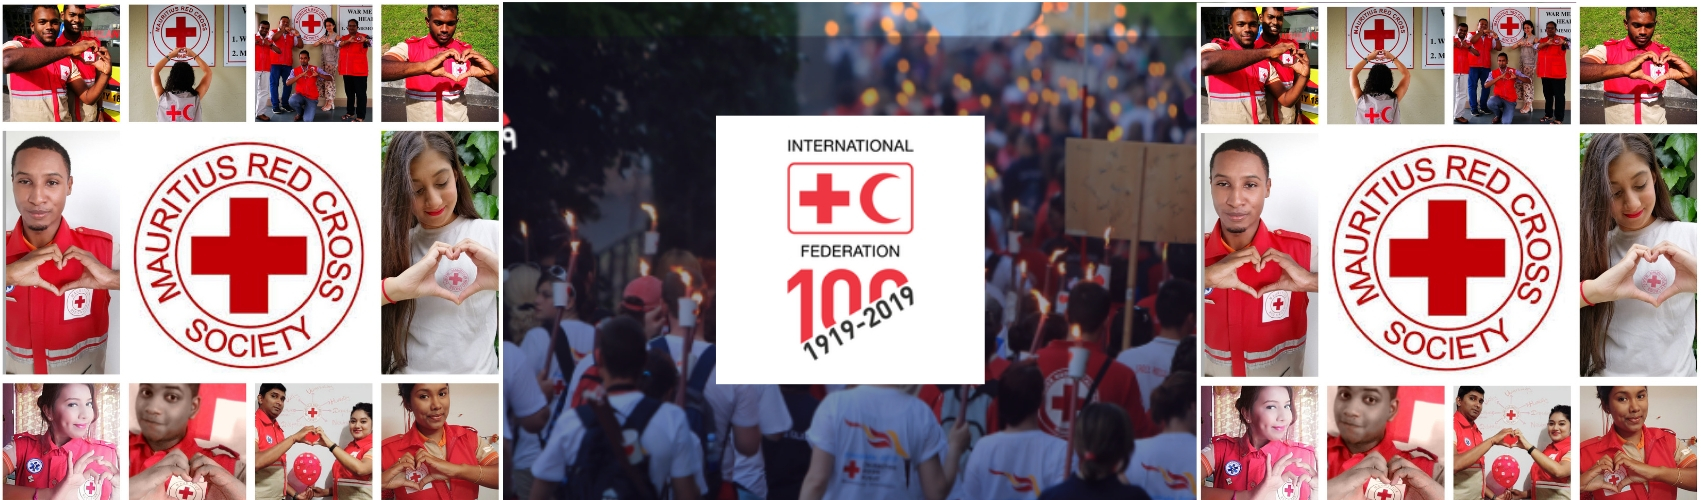 Red Cross Day 2019